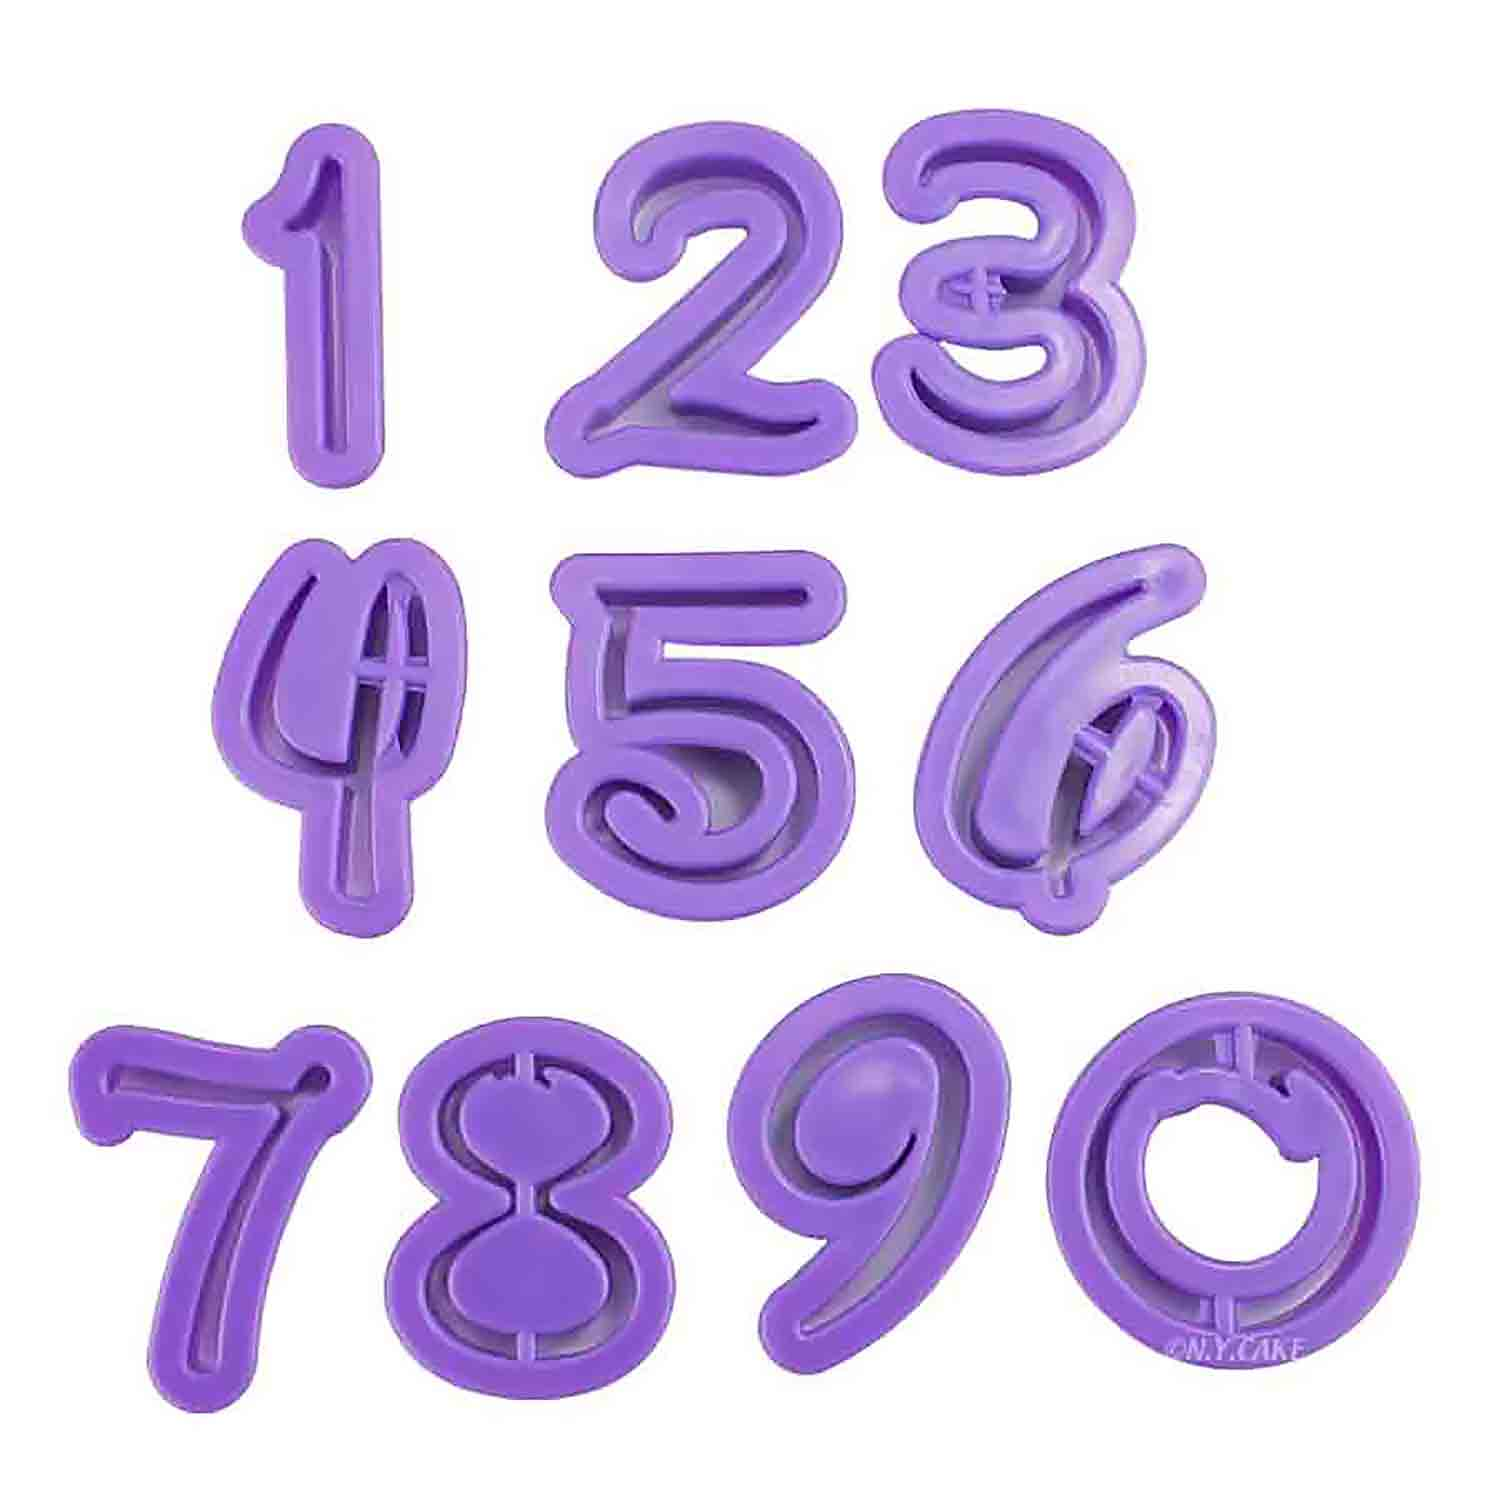 Whimsical Number Cutter Set